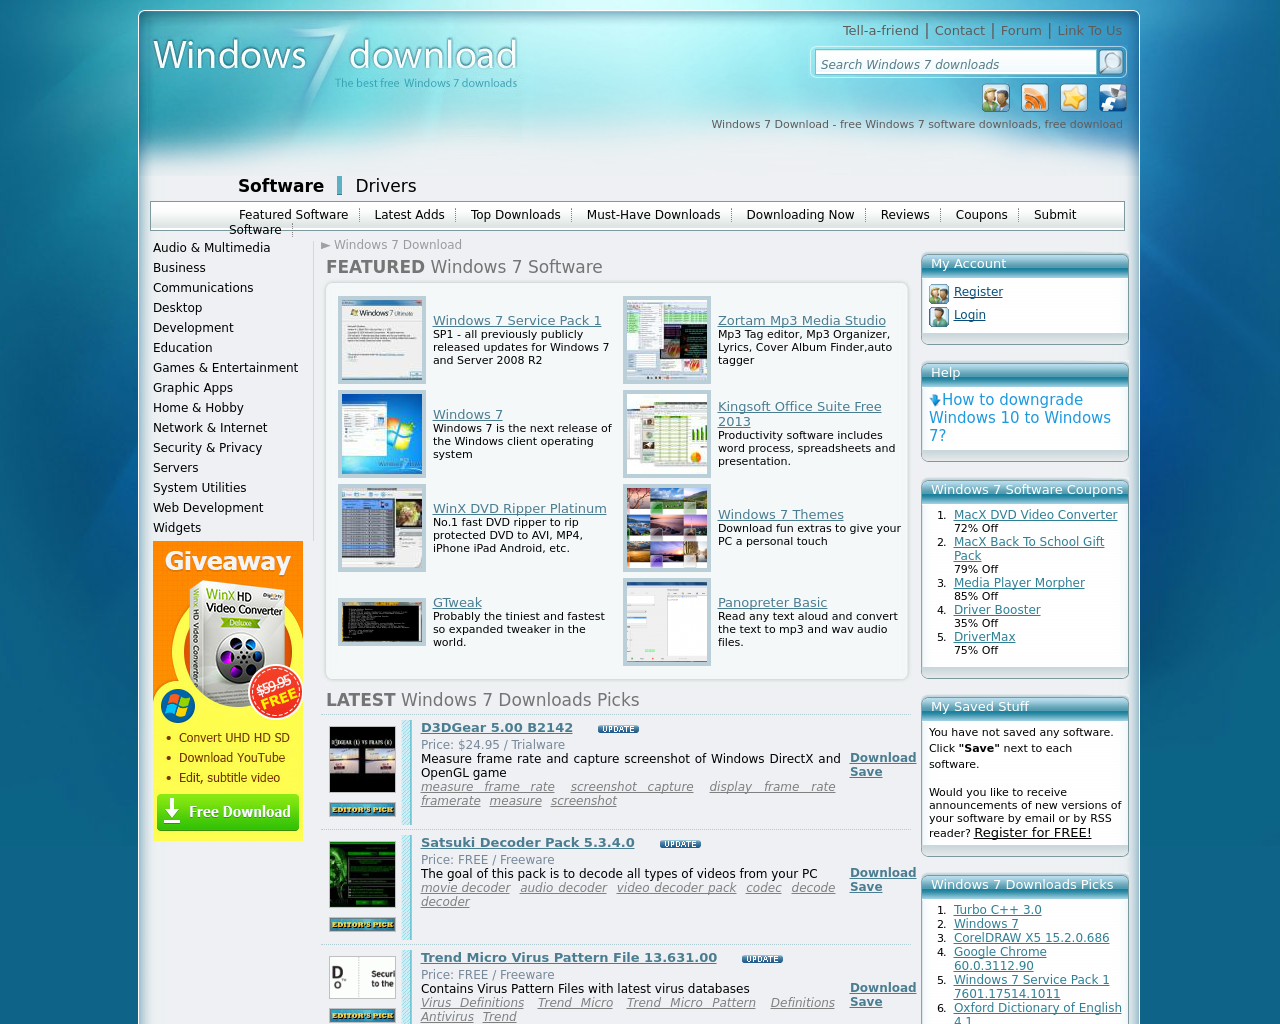 Windows-7-Download-Advertising-Reviews-Pricing